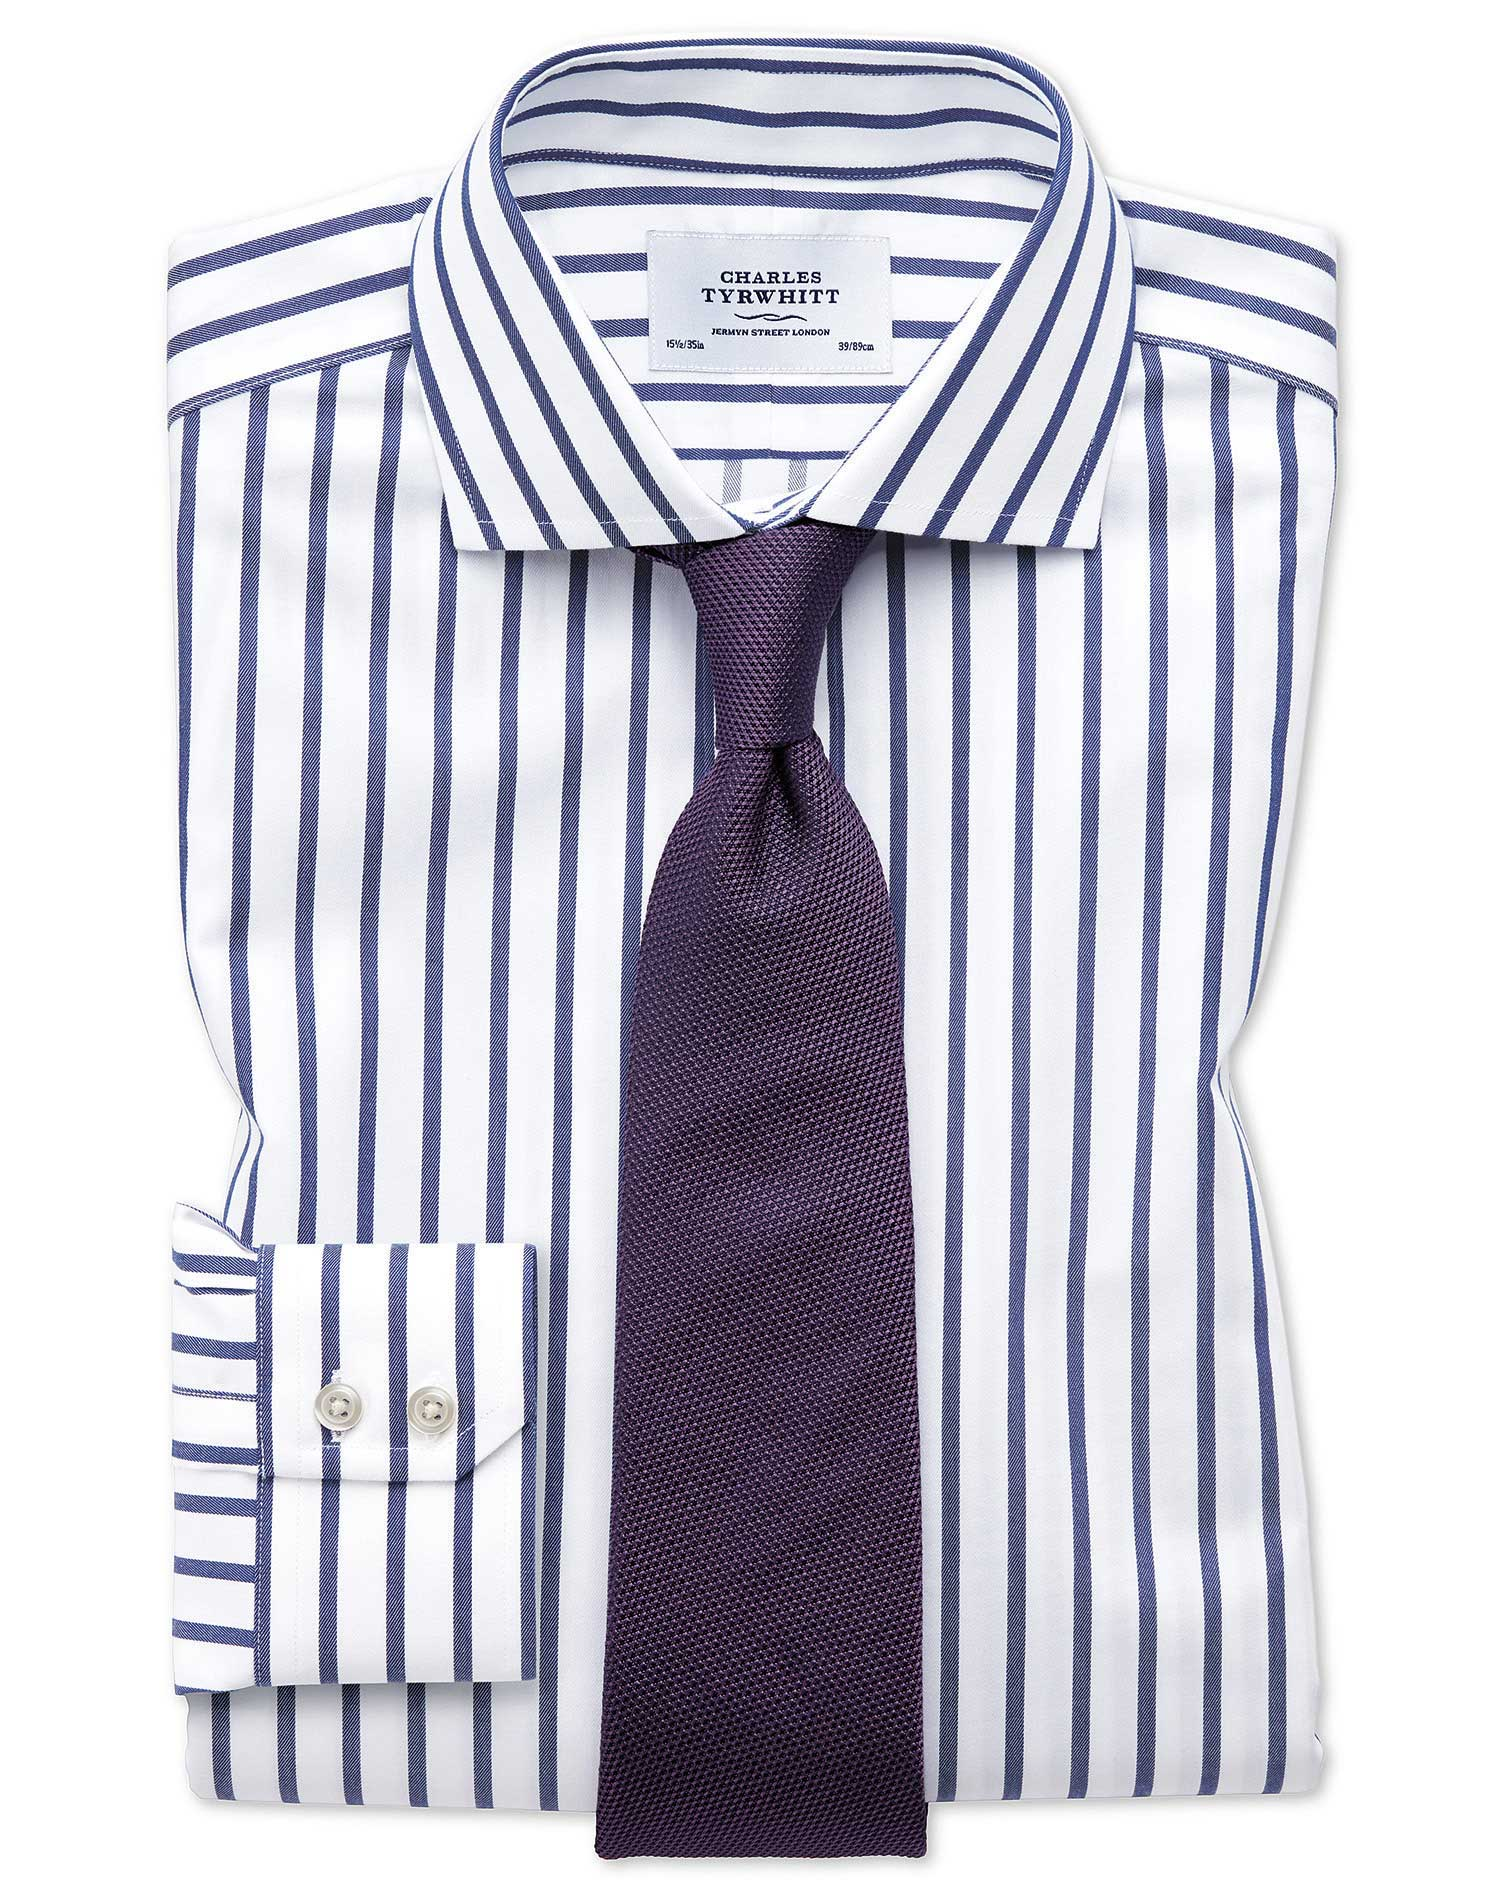 Slim Fit Cutaway Non-Iron Bengal Wide Stripe White and Blue Cotton Formal Shirt Single Cuff Size 16/